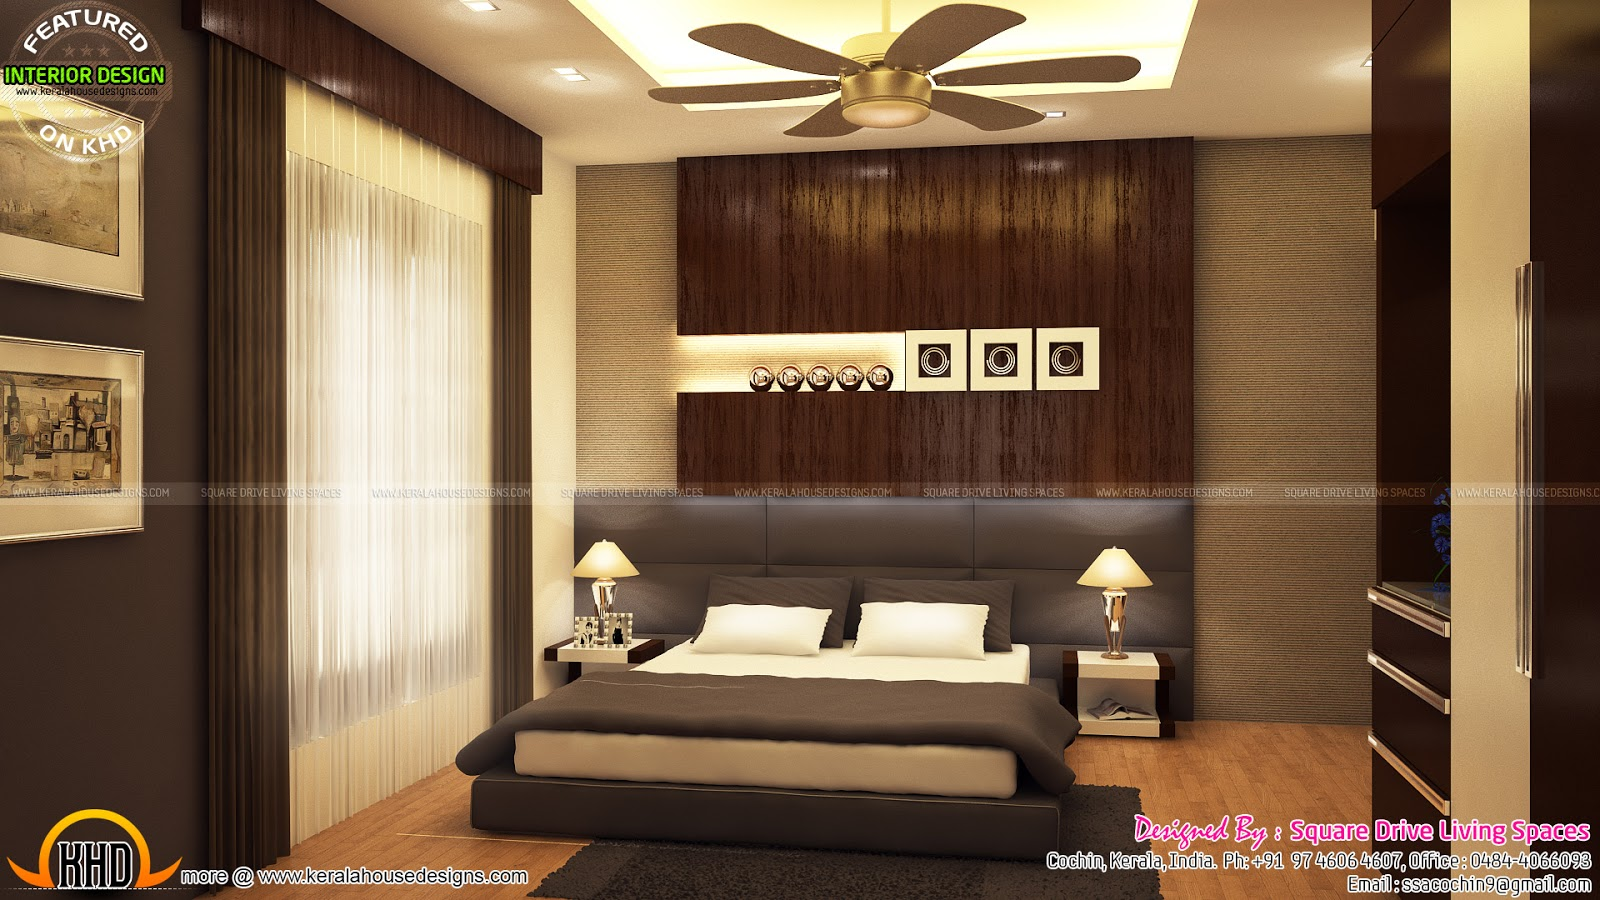 Interior designs of master bedroom living kitchen and for Home interior design ideas india